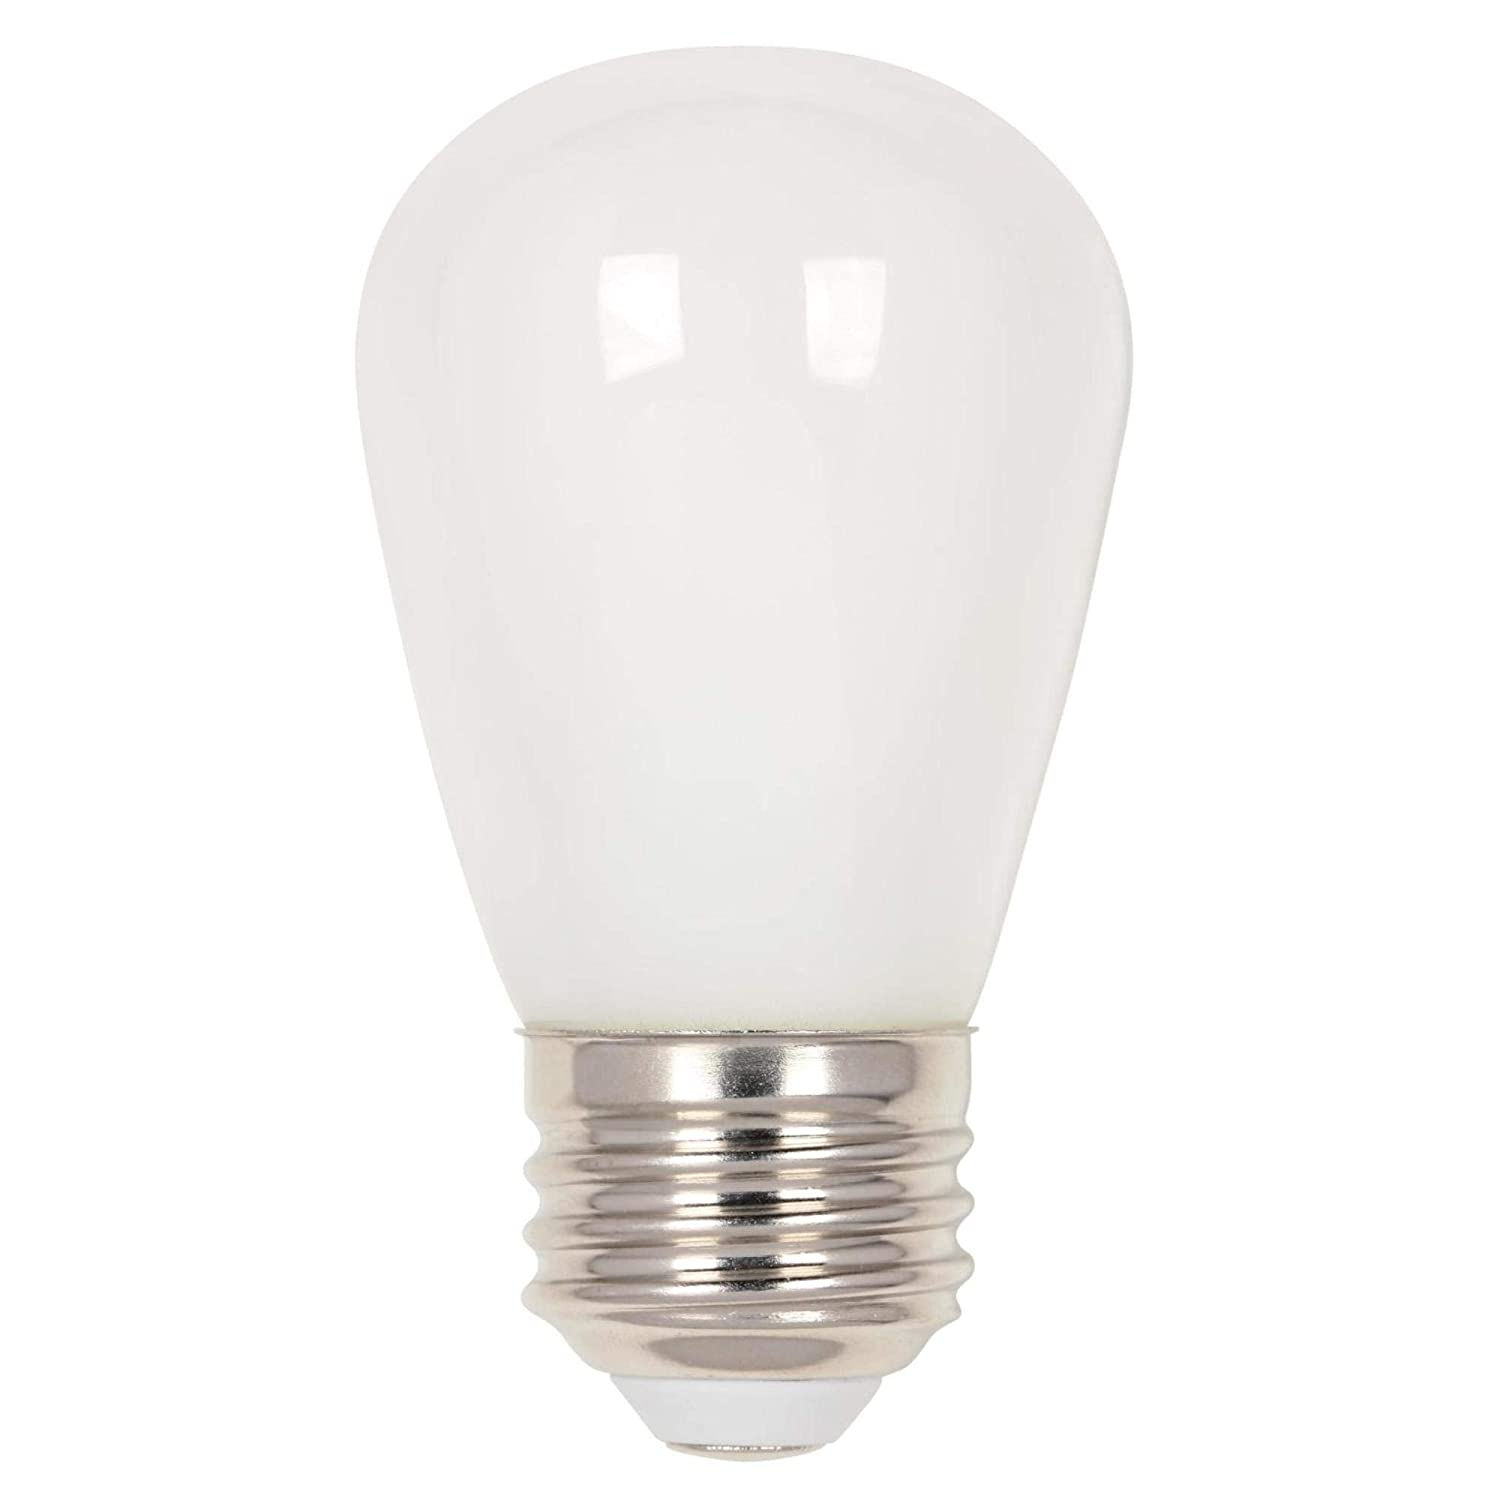 Westinghouse Lighting 5511500 1.2 (15-Watt Equivalent) S14 Frosted, E26 (Medium) Base LED Light Bulb,